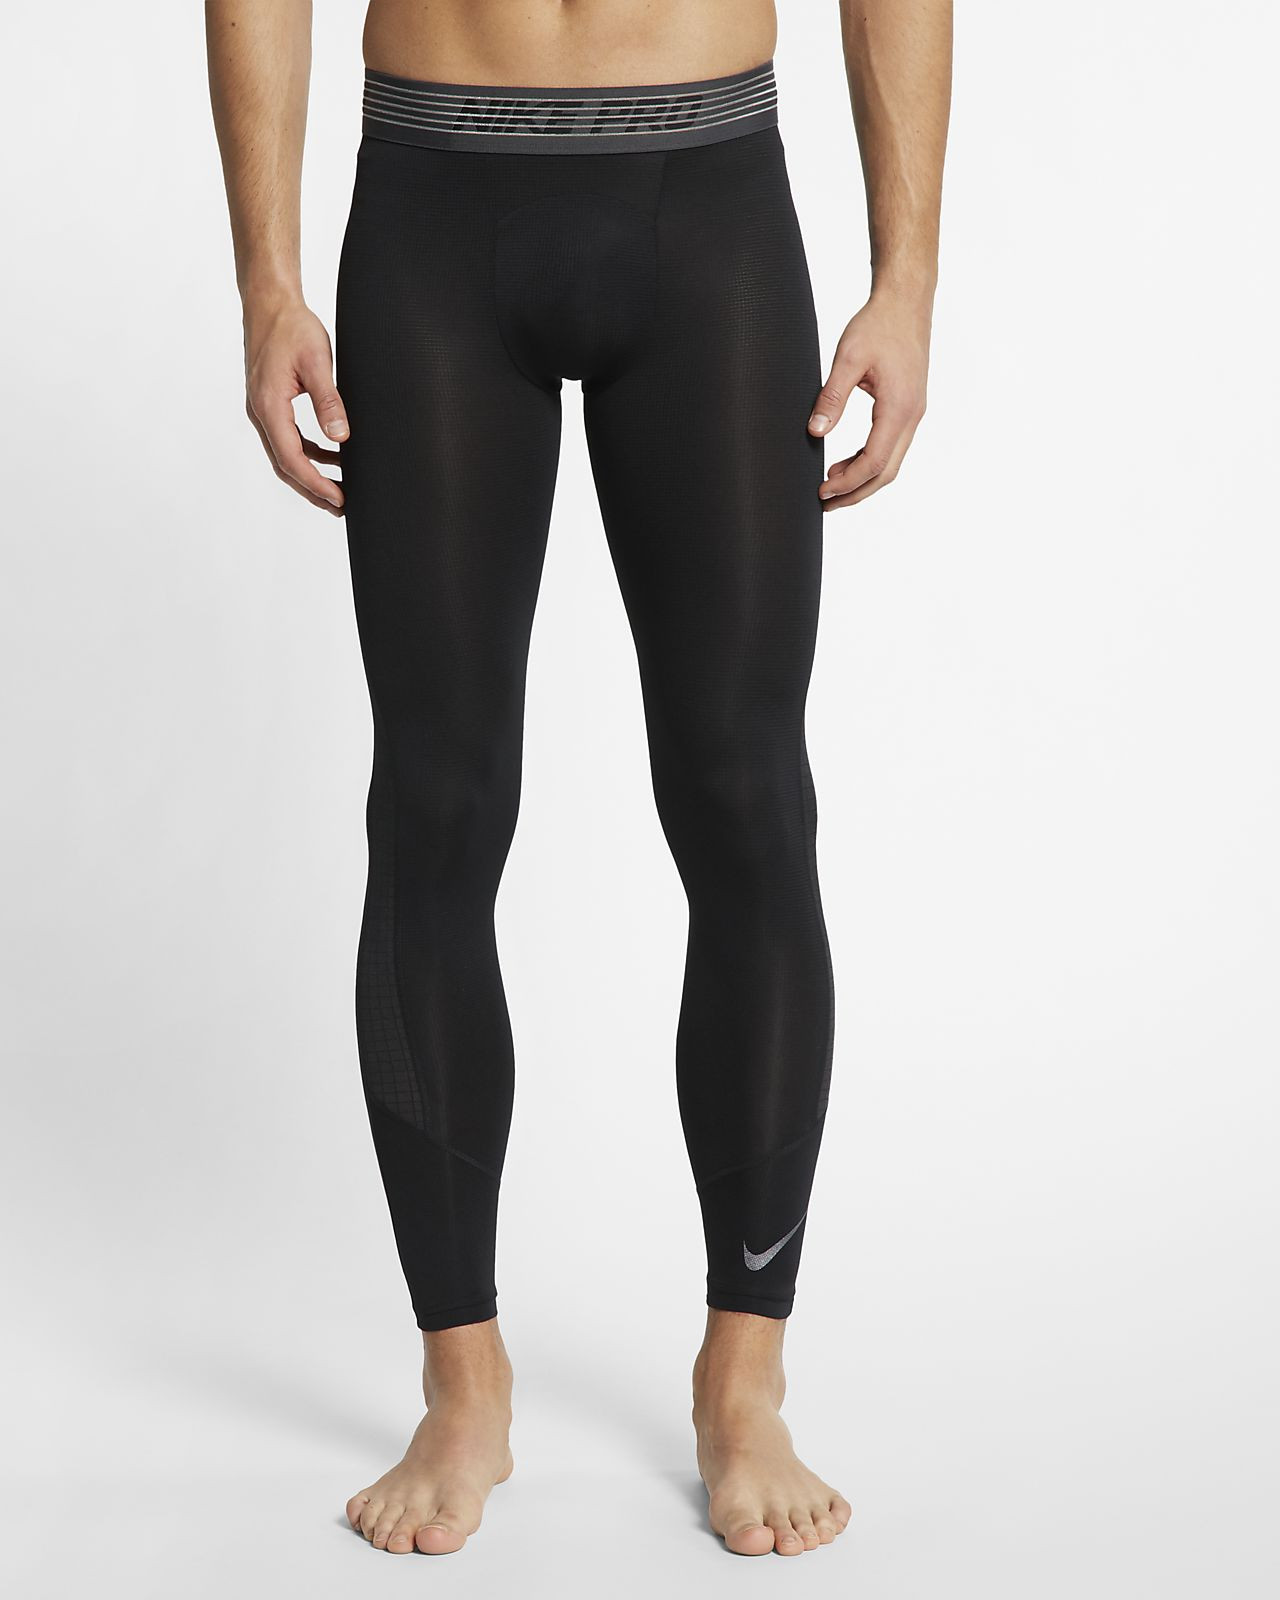 Nike Pro Breathe Herren-Tights